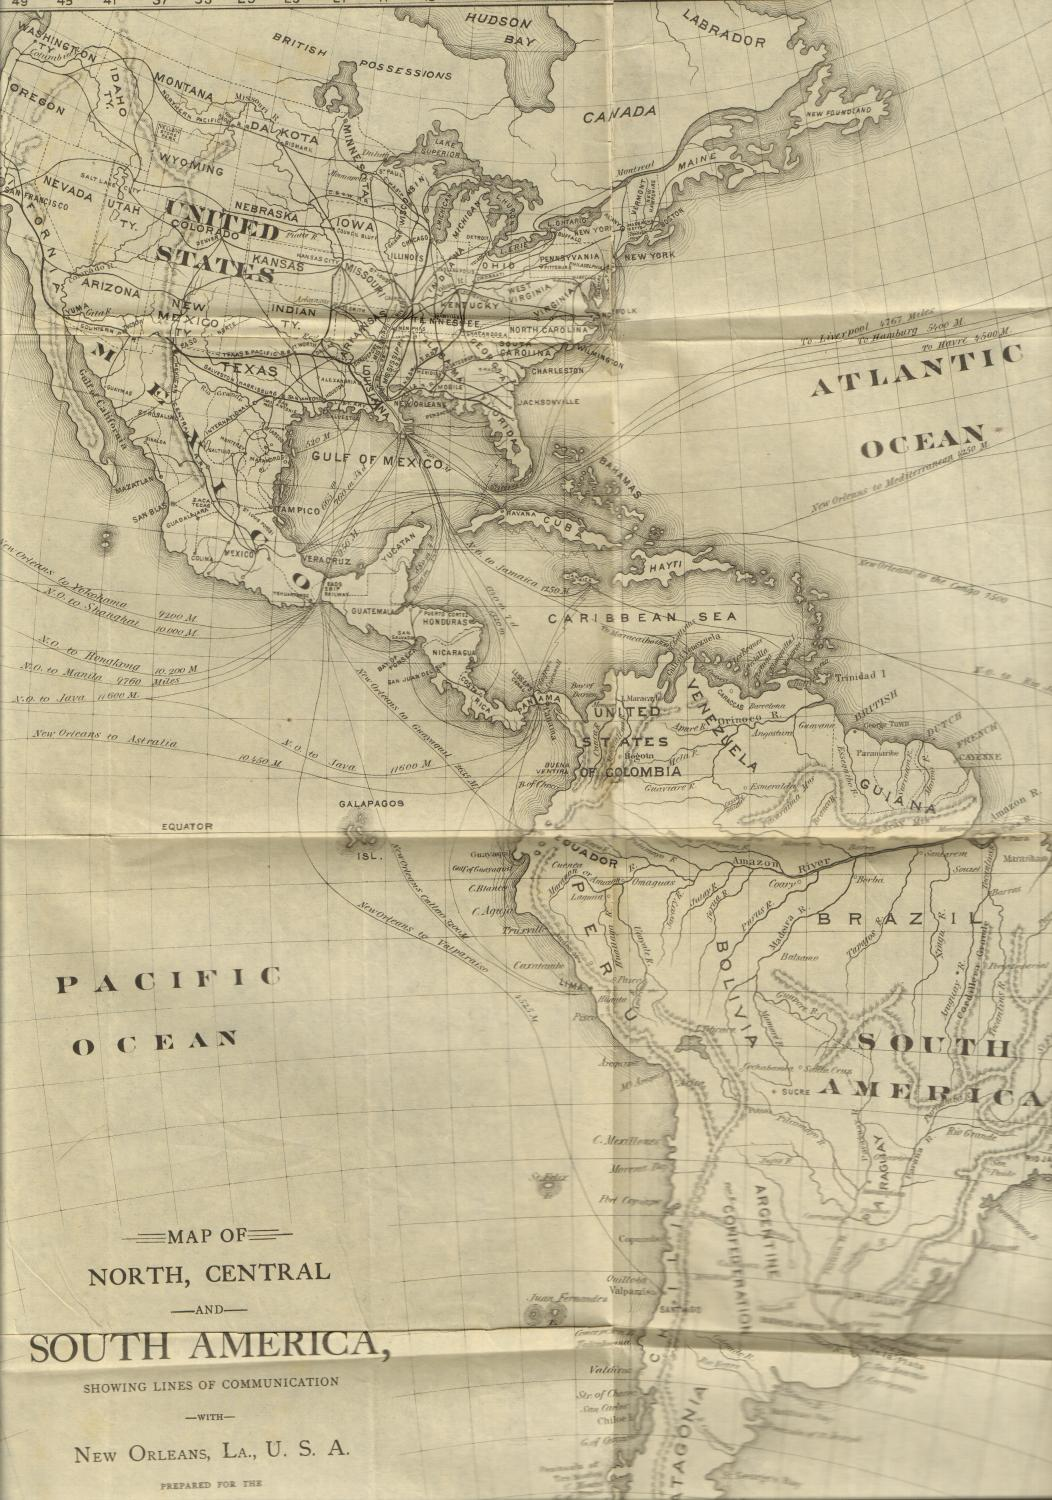 Map Of North Central And South America Showing Lines Of